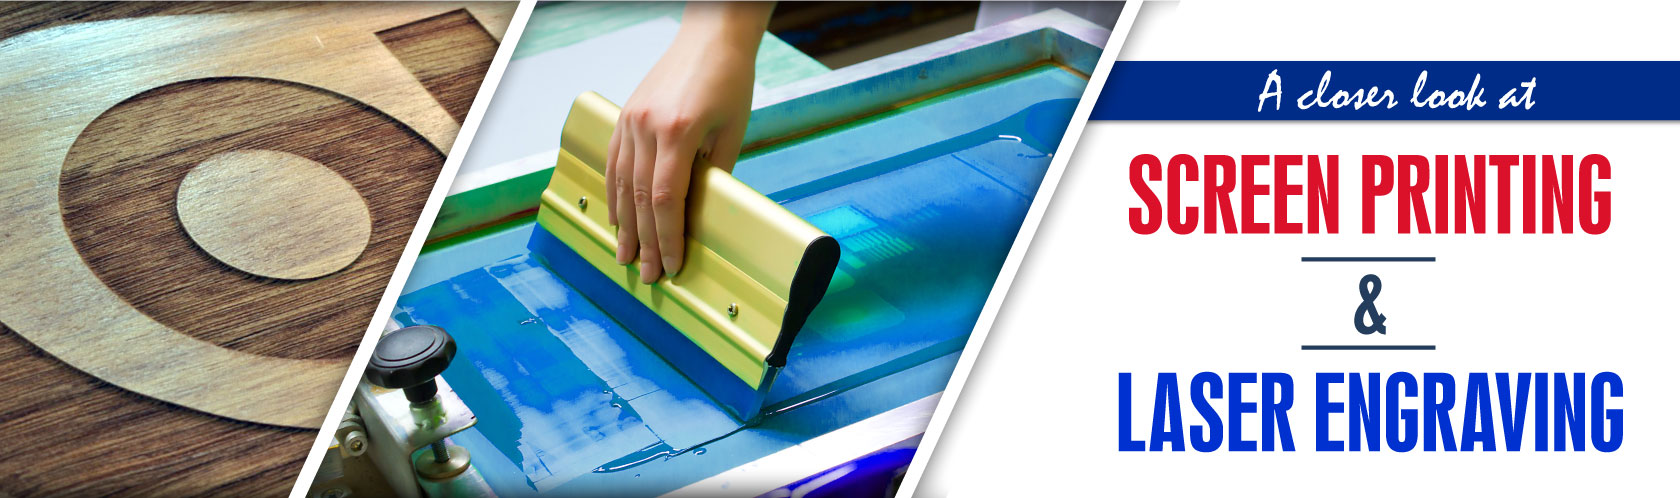 Customizing Your Product: A closer look at Screen-printing & Laser Engraving